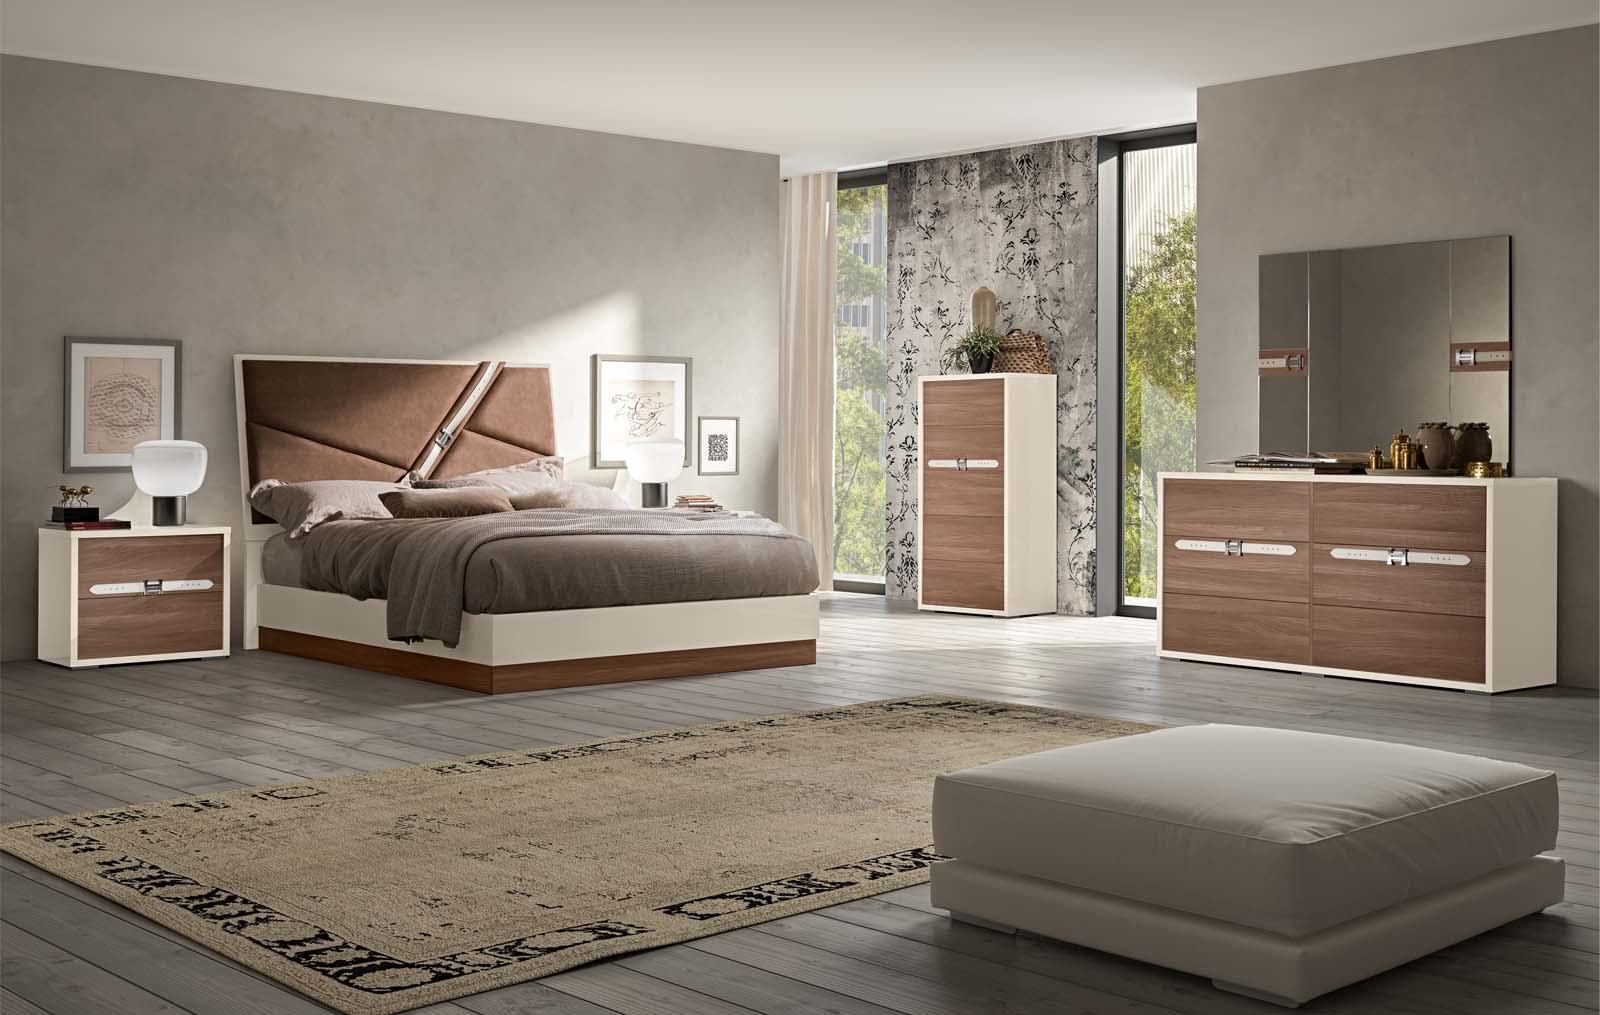 made in italy wood designer bedroom furniture sets with optional storage system